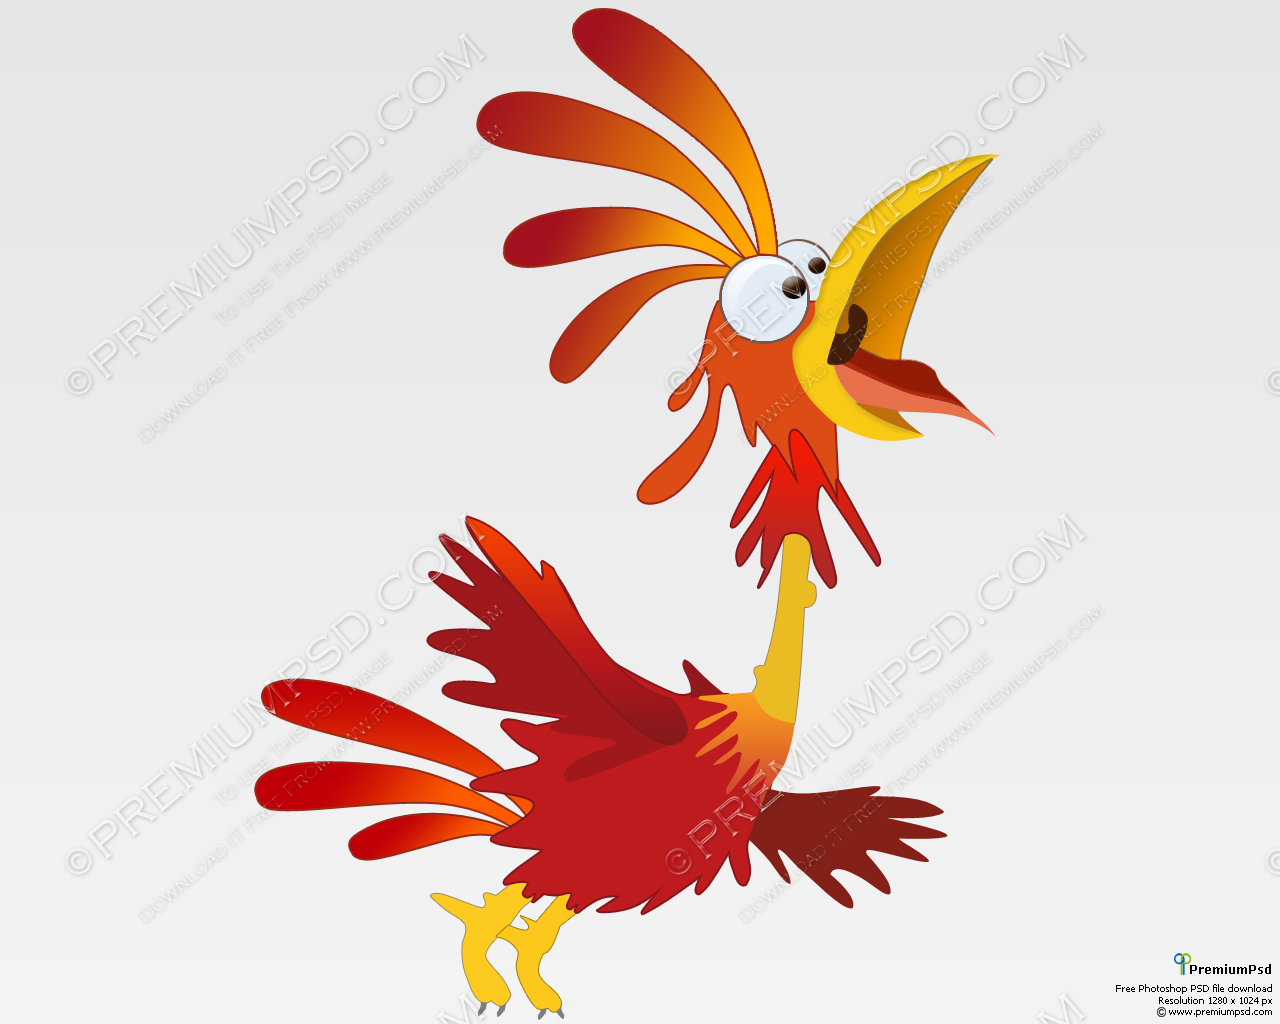 Visiting Cards Backgrounds Red Rooster Cartoon Gn Psd 409445 Wallpaper wallpaper